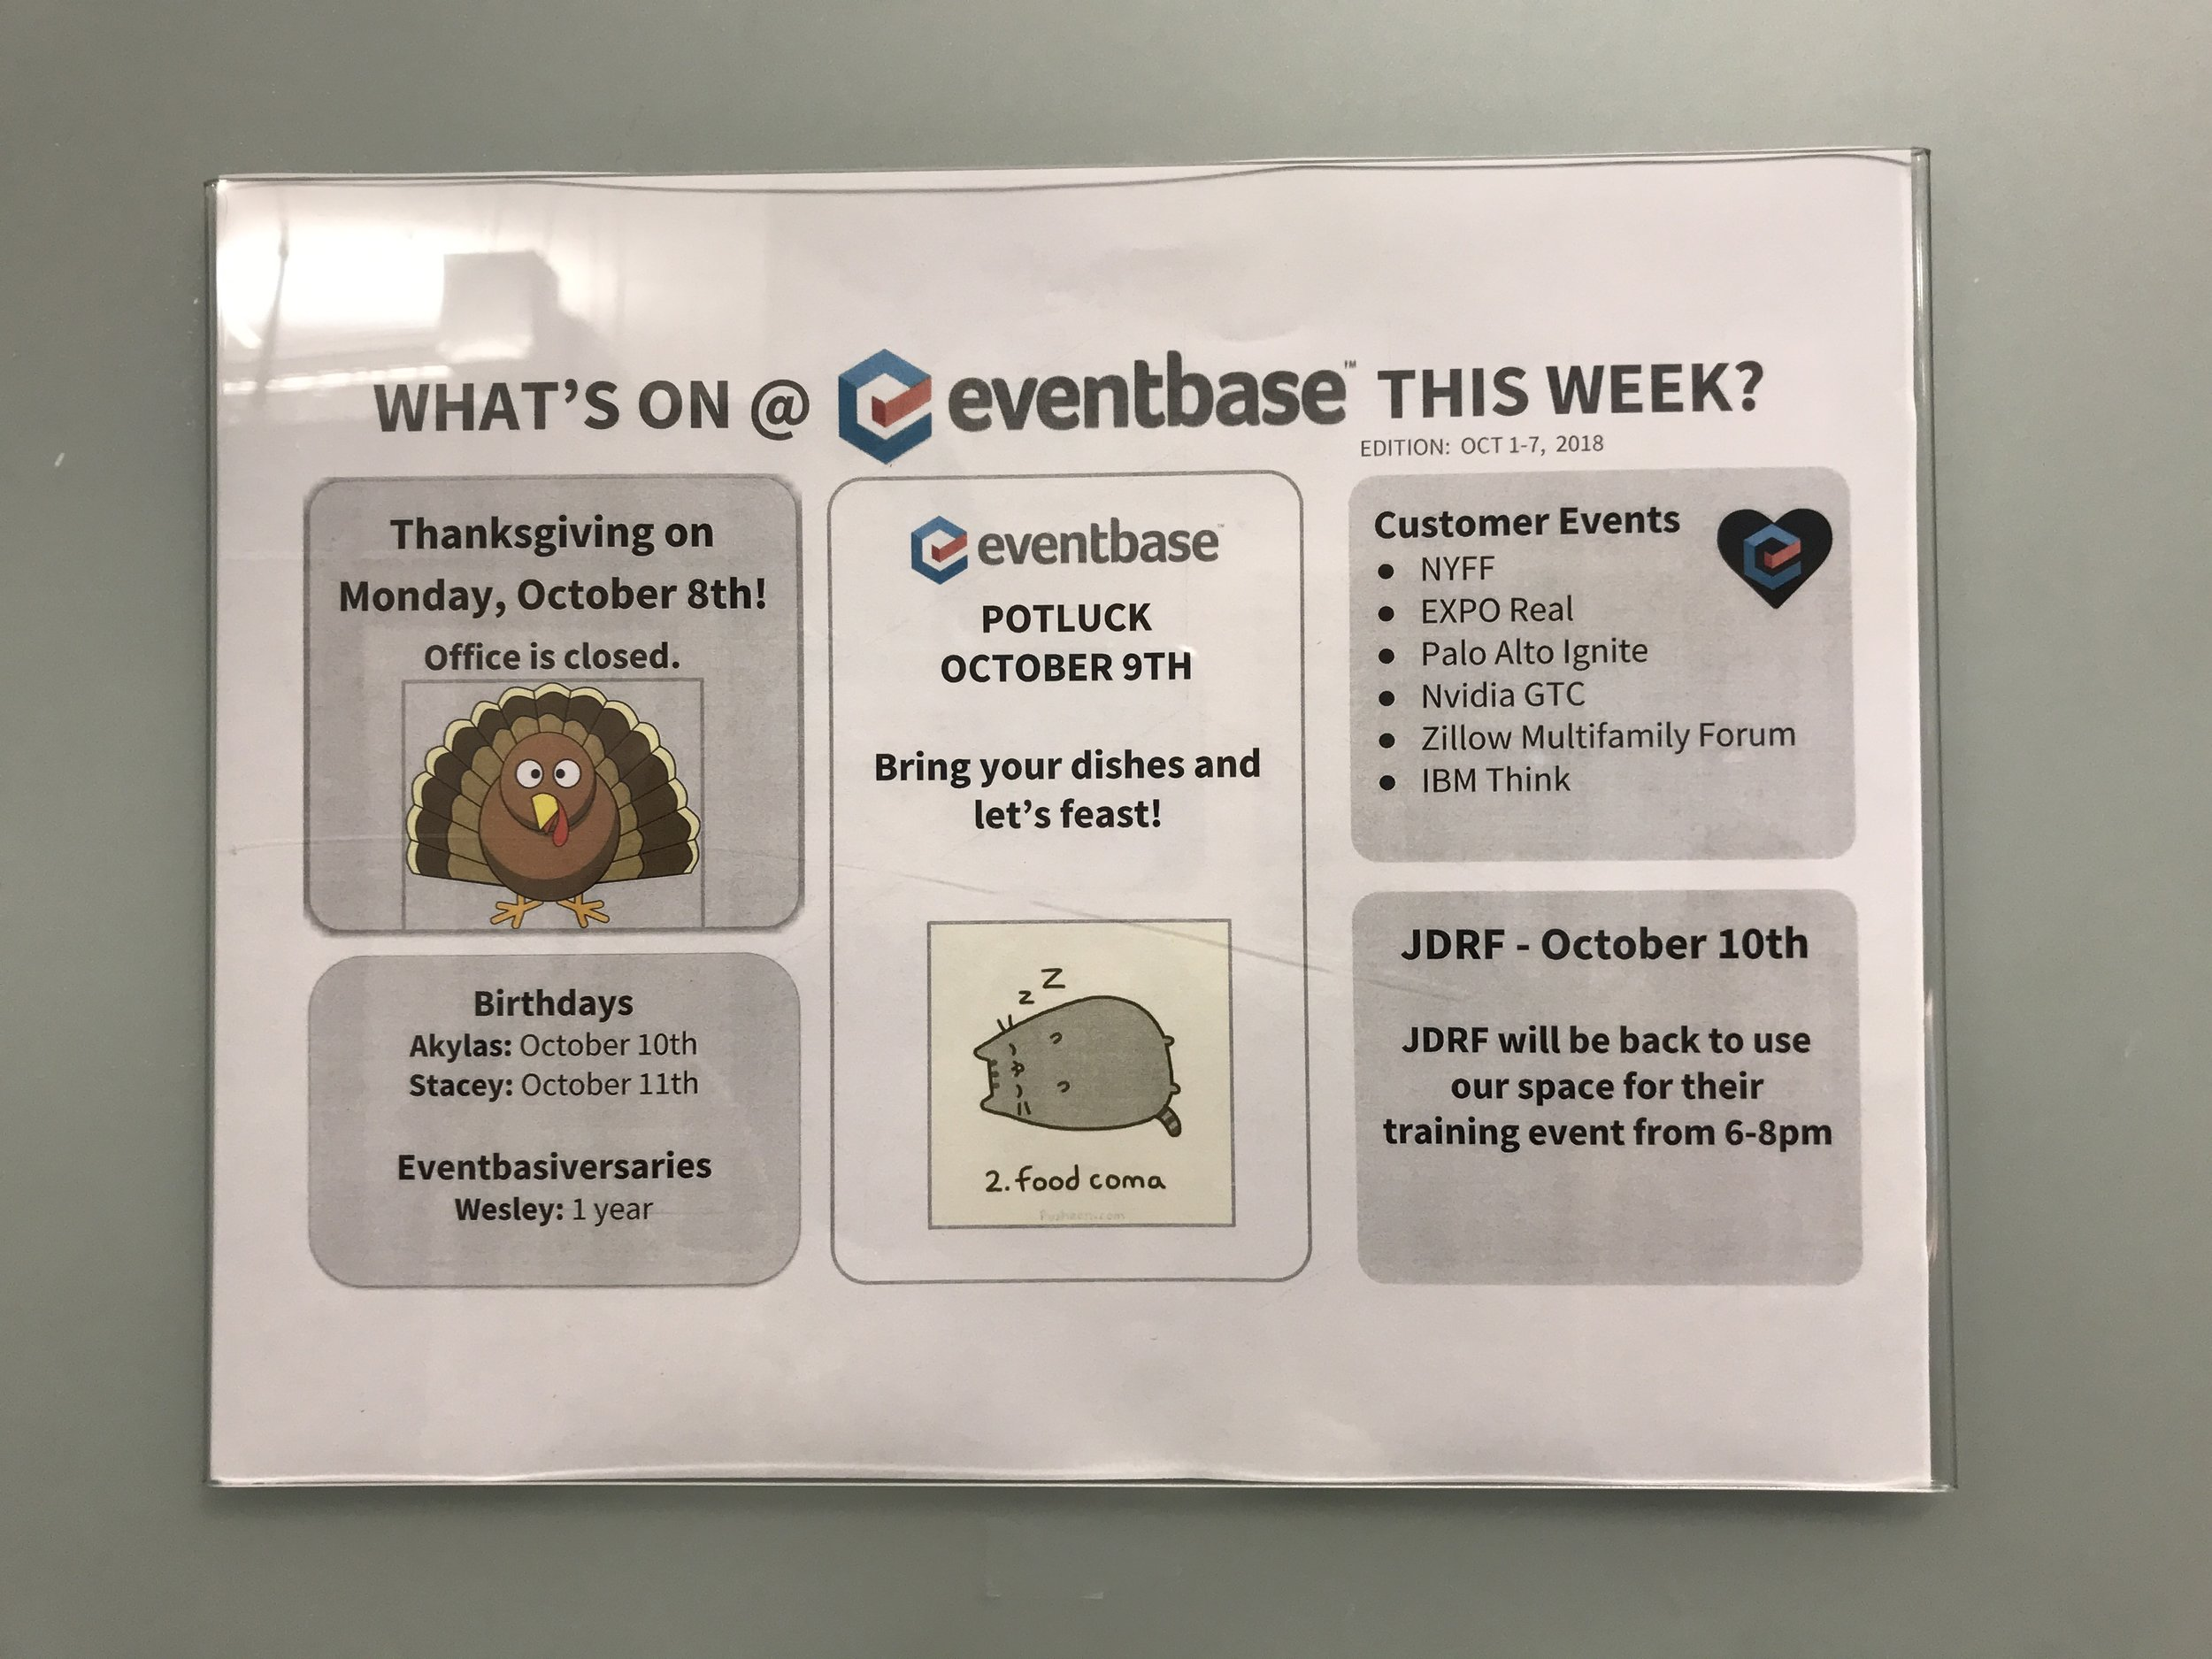 What's going on at Eventbase this week?